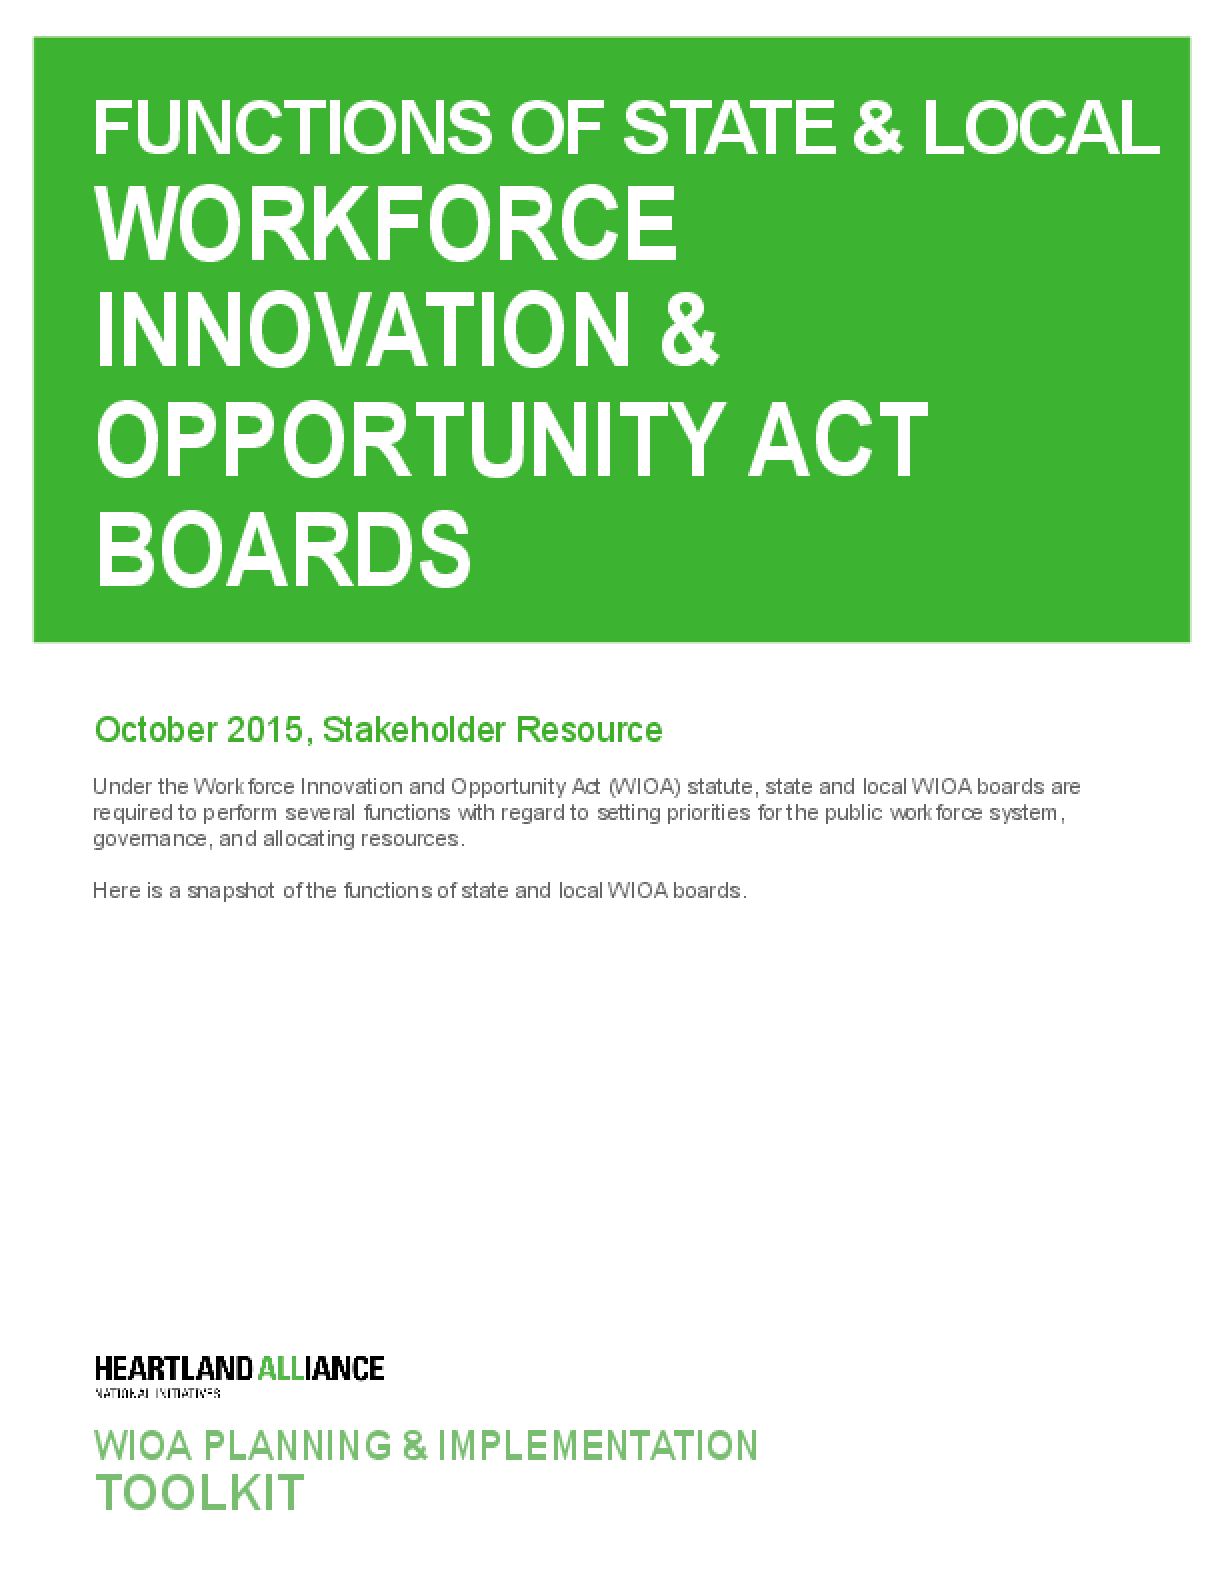 Functions of State and Local Workforce Innovation and Opportunity Act Boards